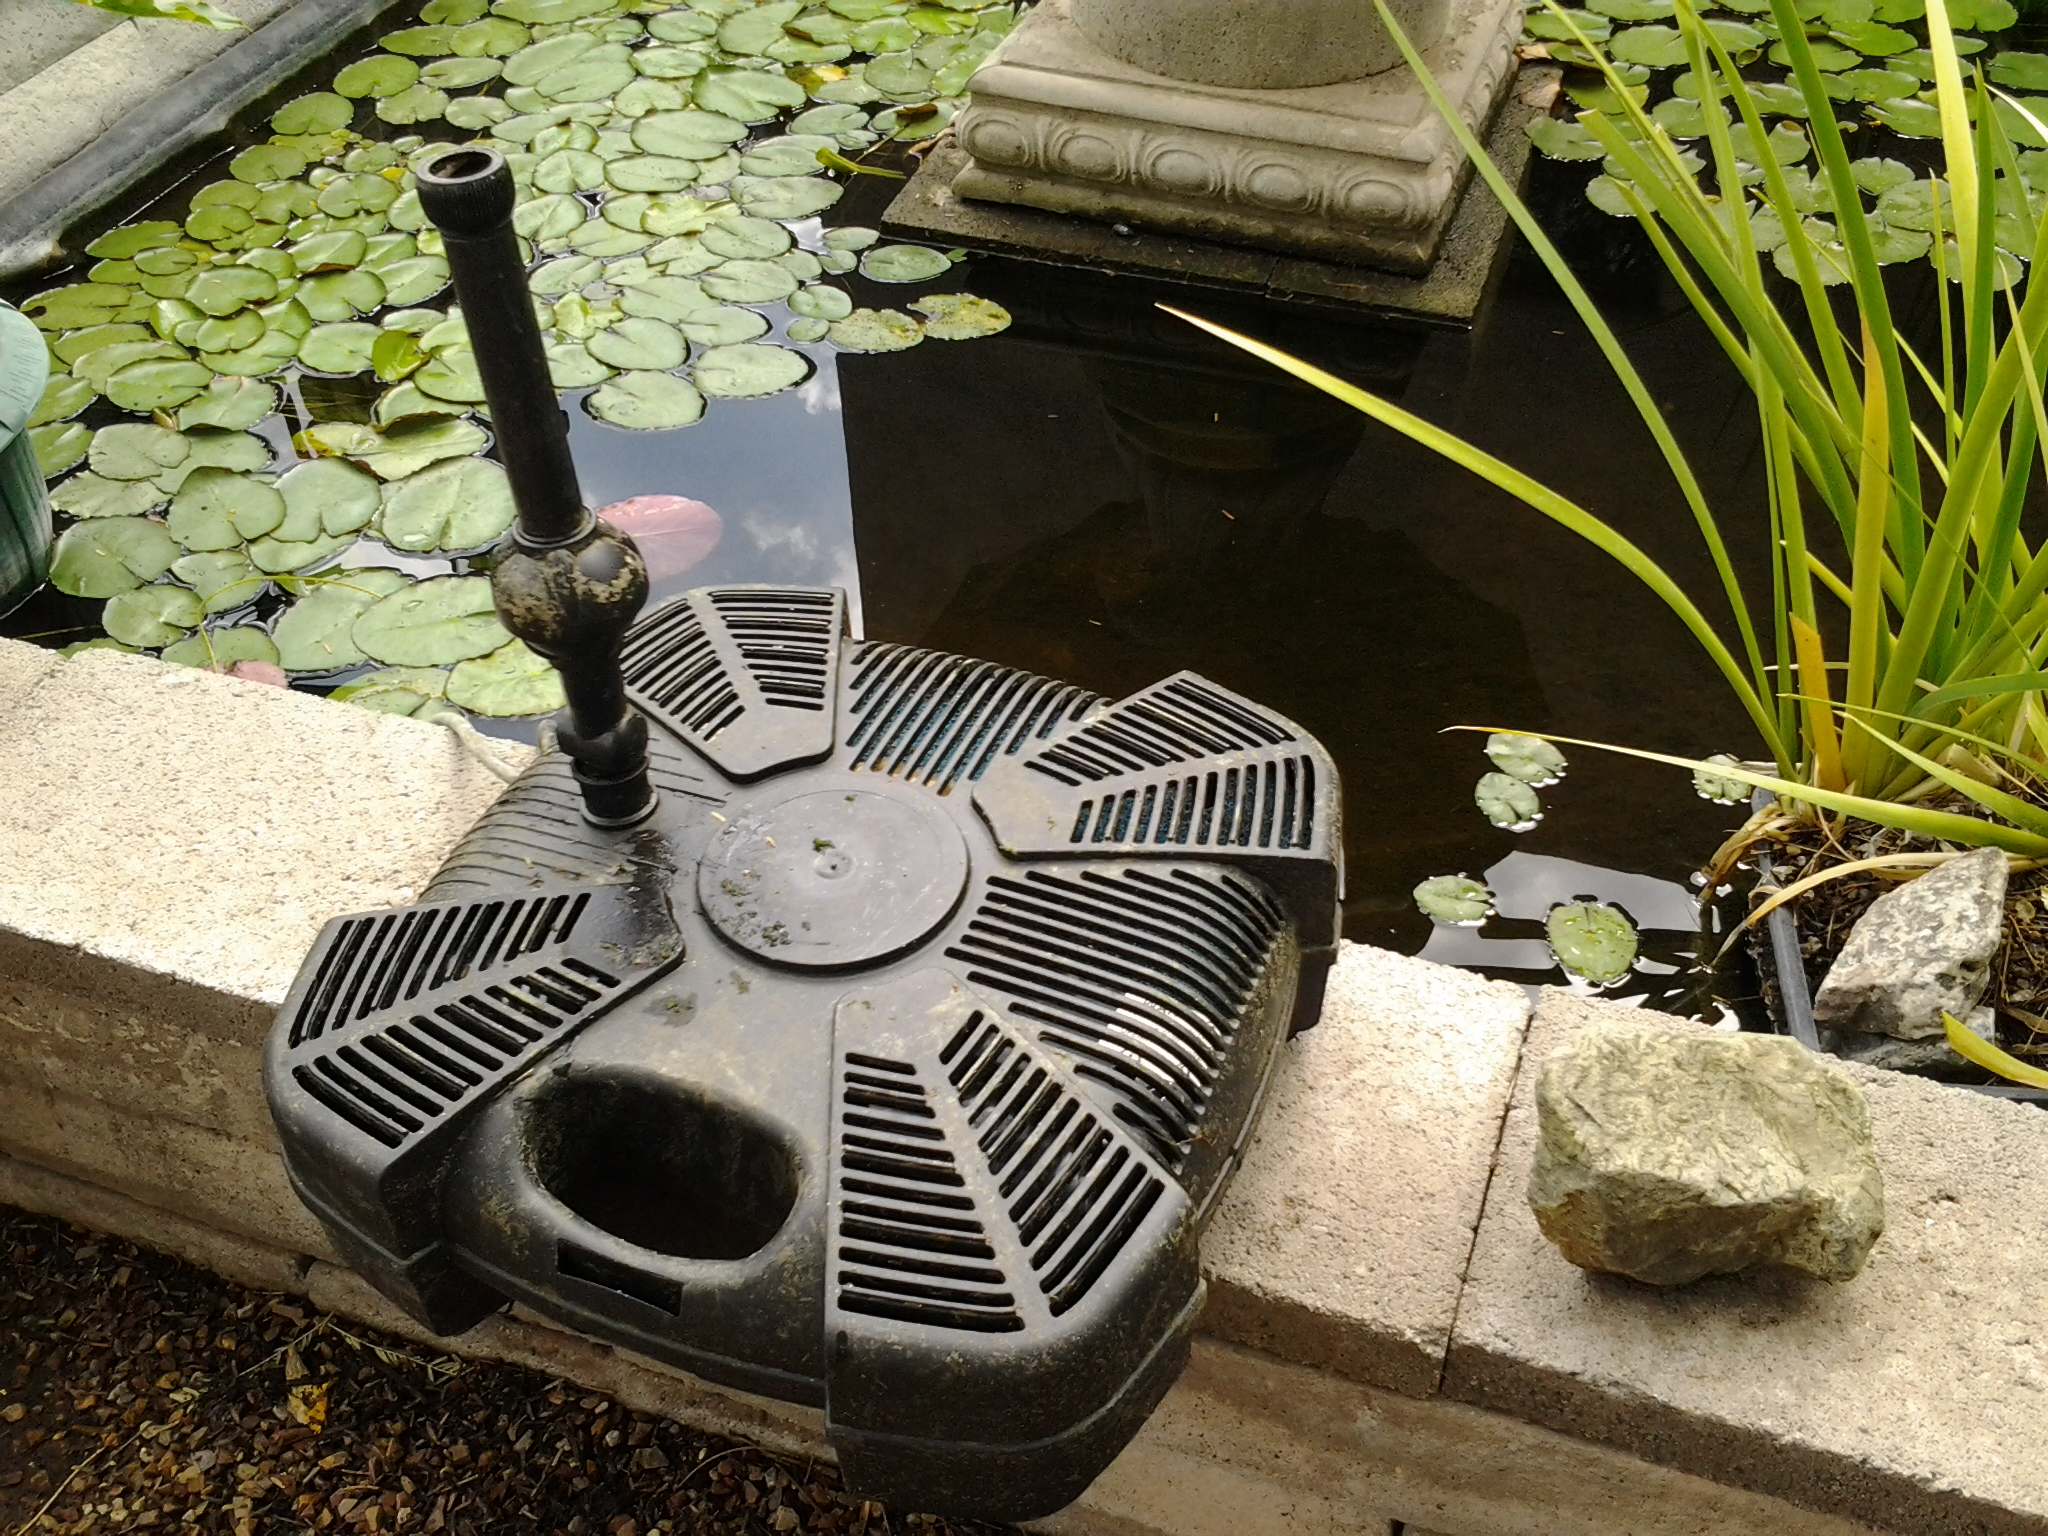 Best pond filter system all in one lifegard pump with uv for Koi pond pump and filter